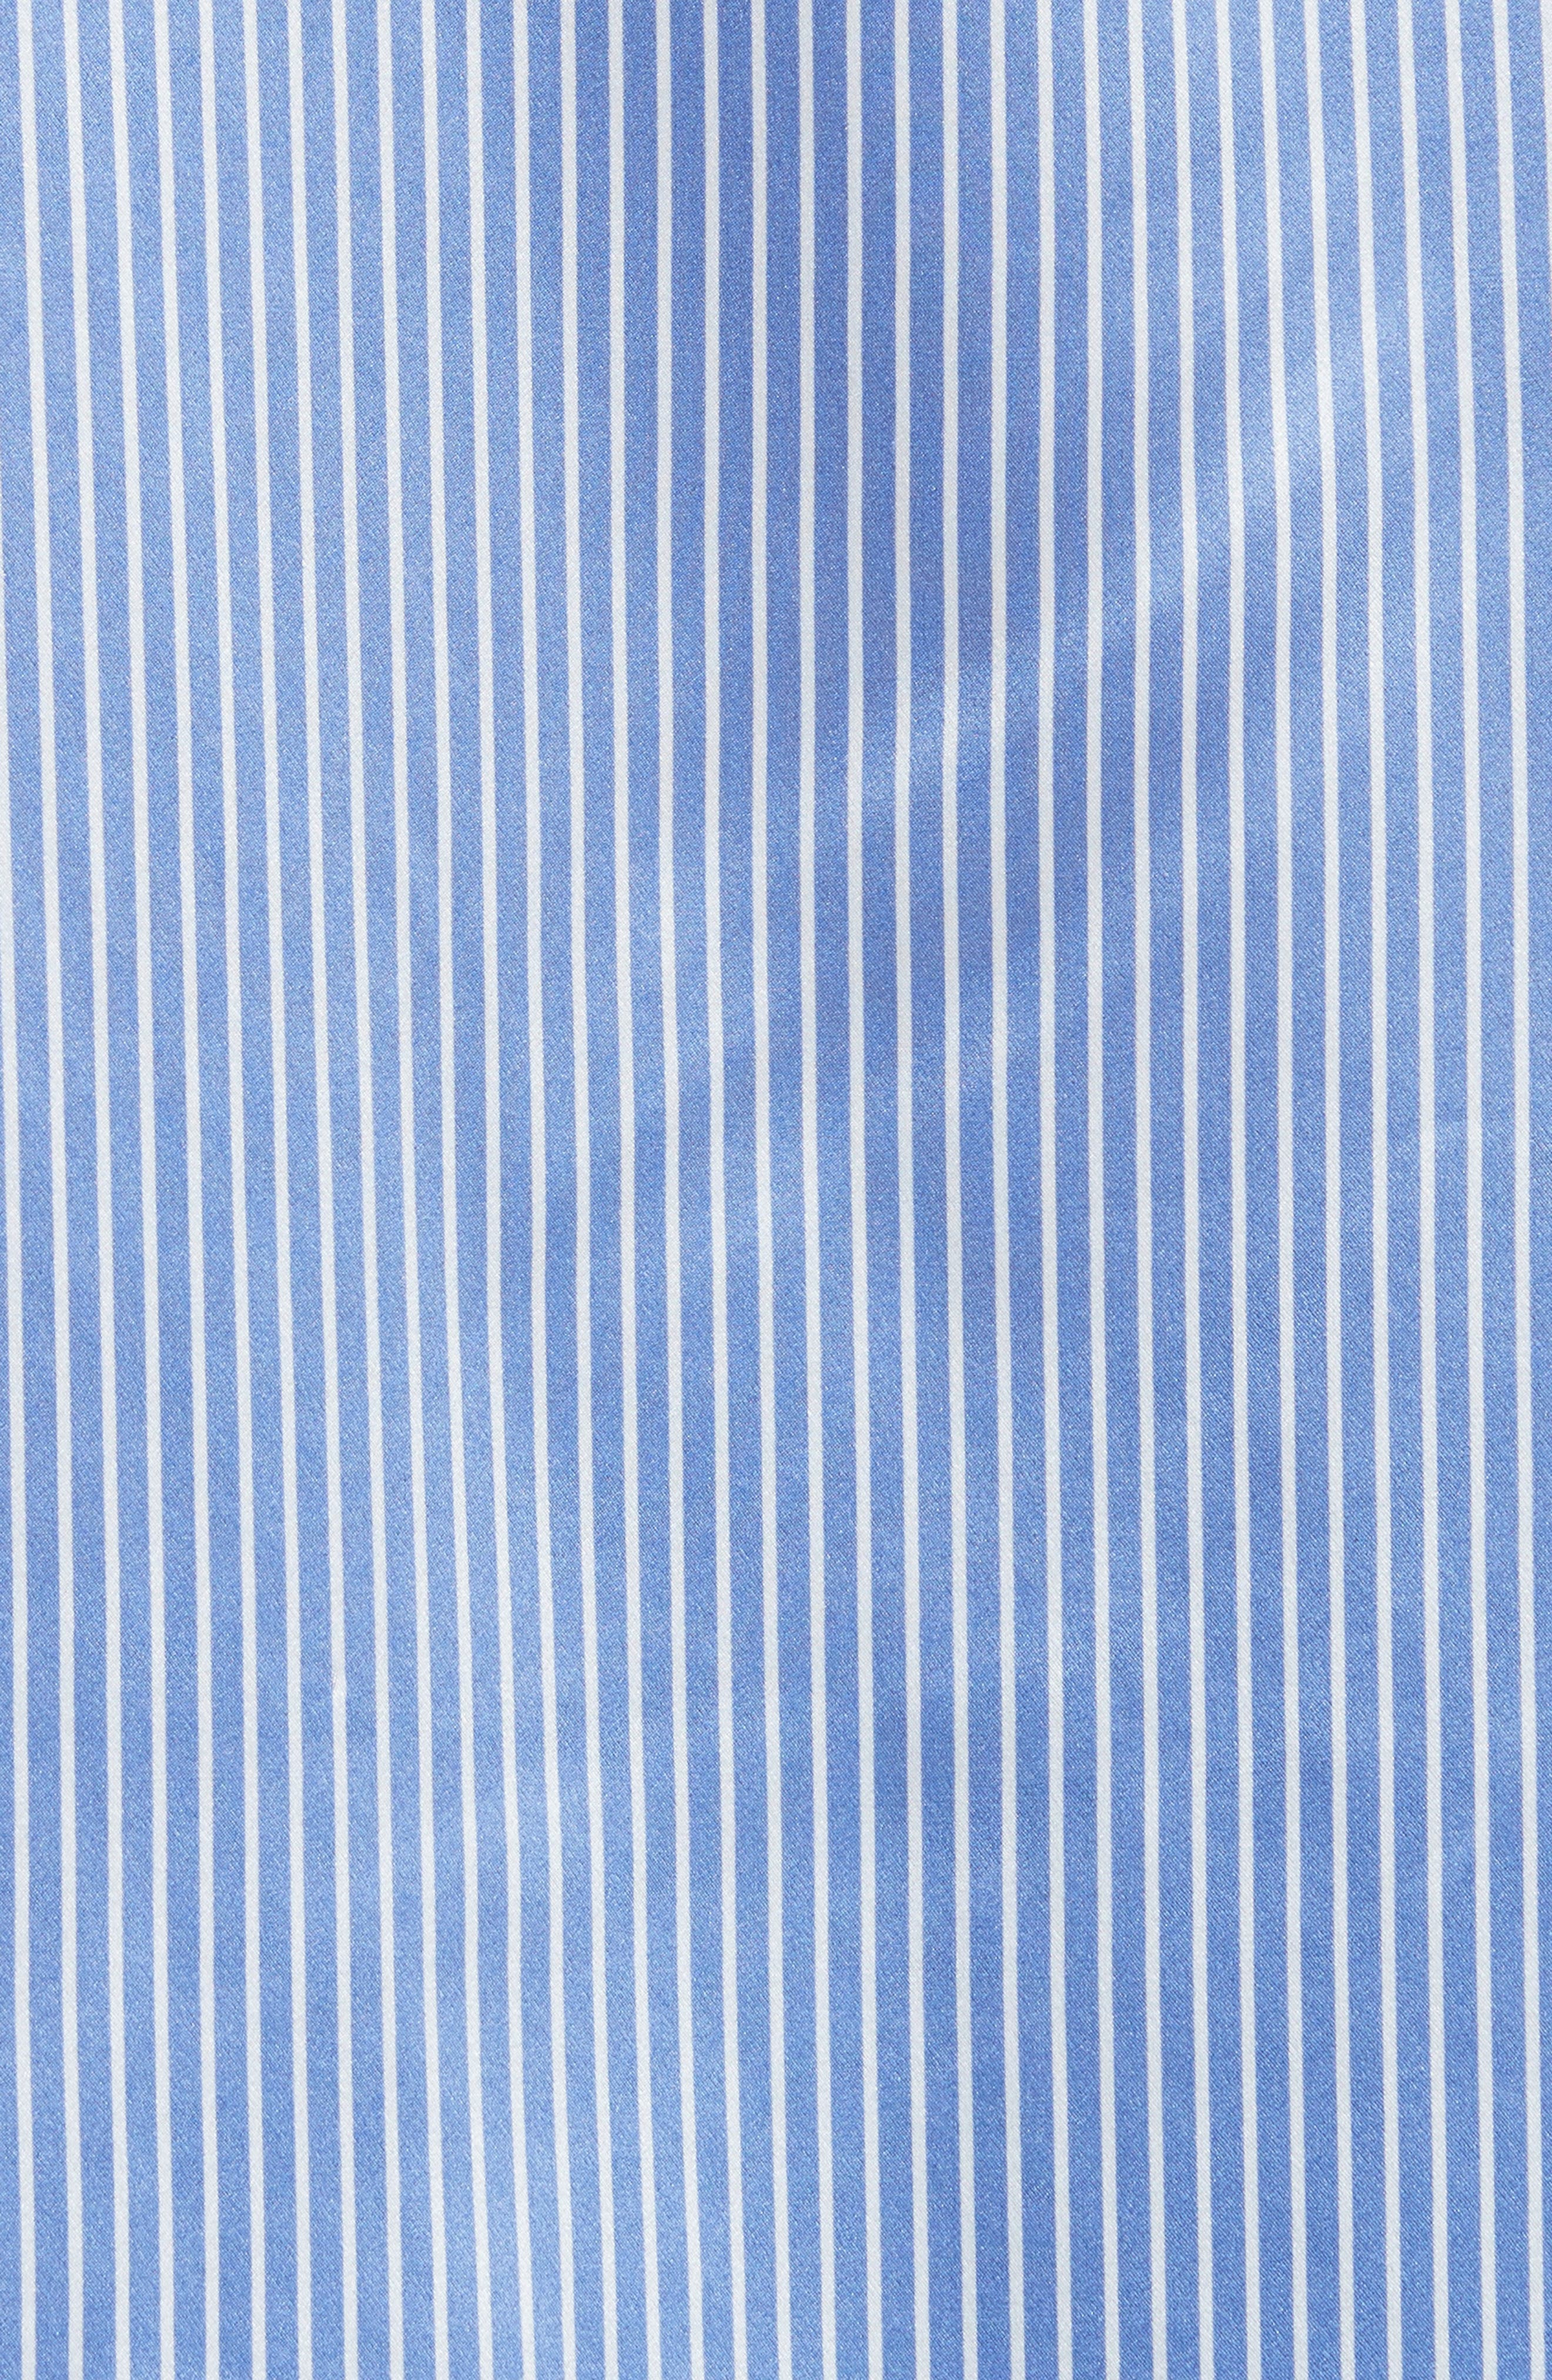 Silk Satin Blouse,                             Alternate thumbnail 5, color,                             Washed Whale With White Stripe